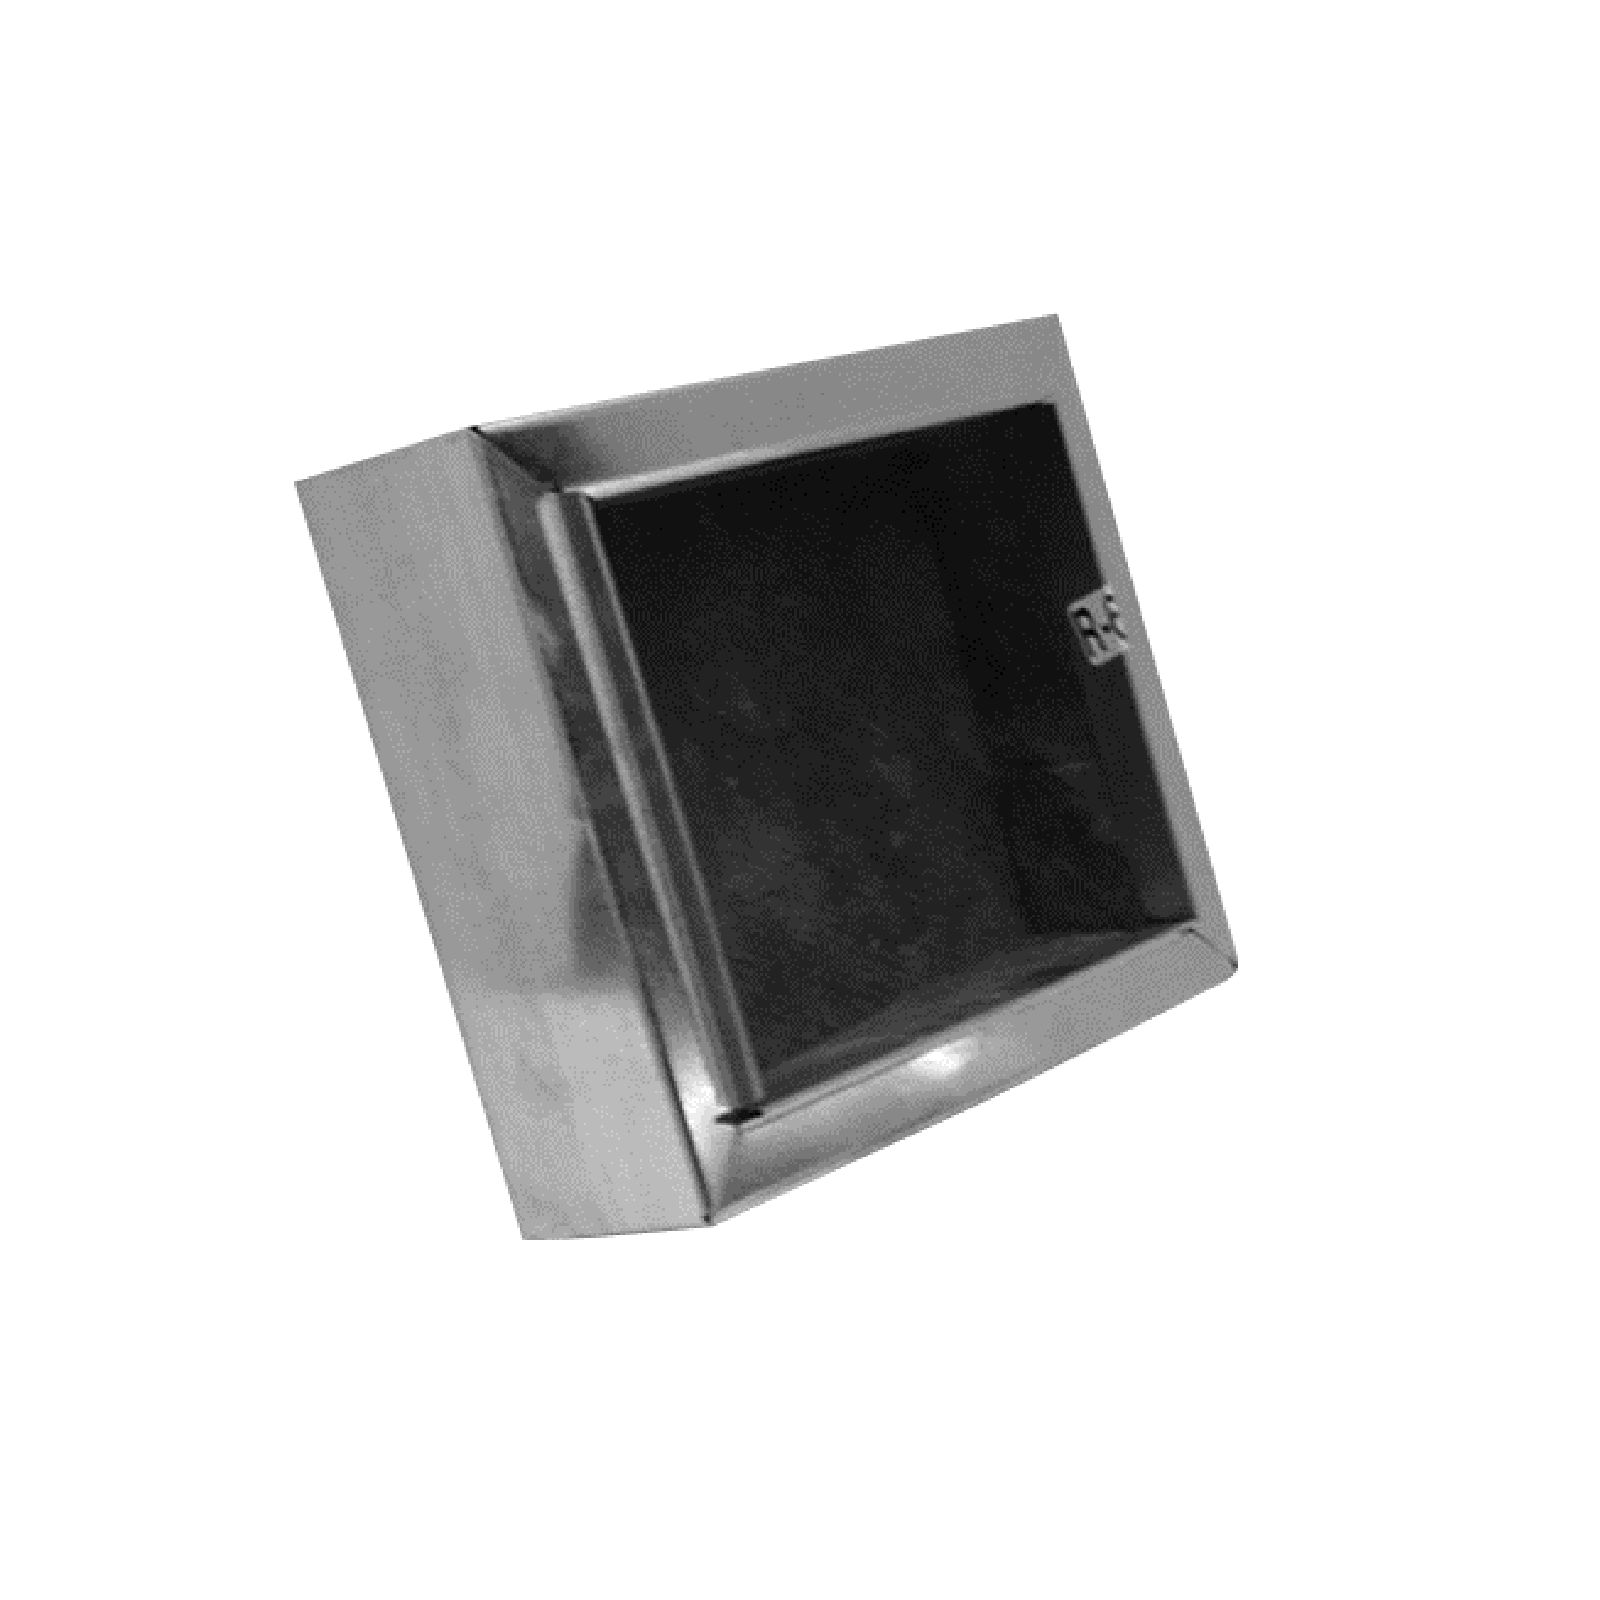 "Mitchell Metal 40R61010 - 10"" X 10"" Ductboard Register Box - R6 Ductboard Applications"